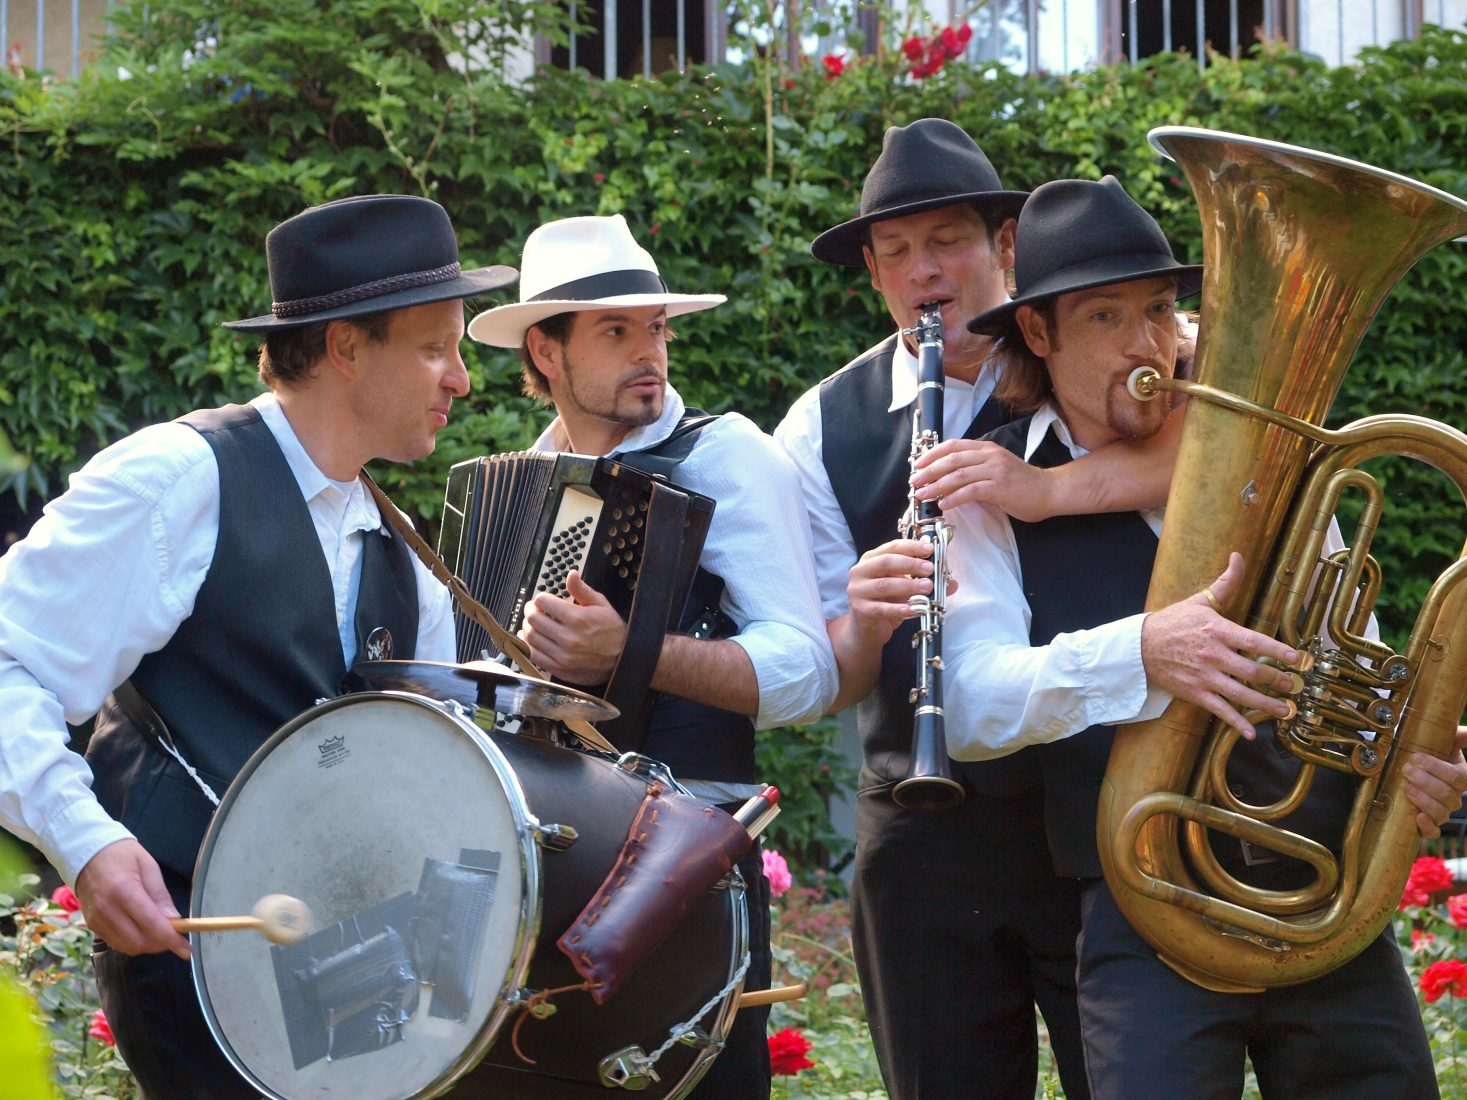 Klezmer Quartett - Klezmerband Open Air